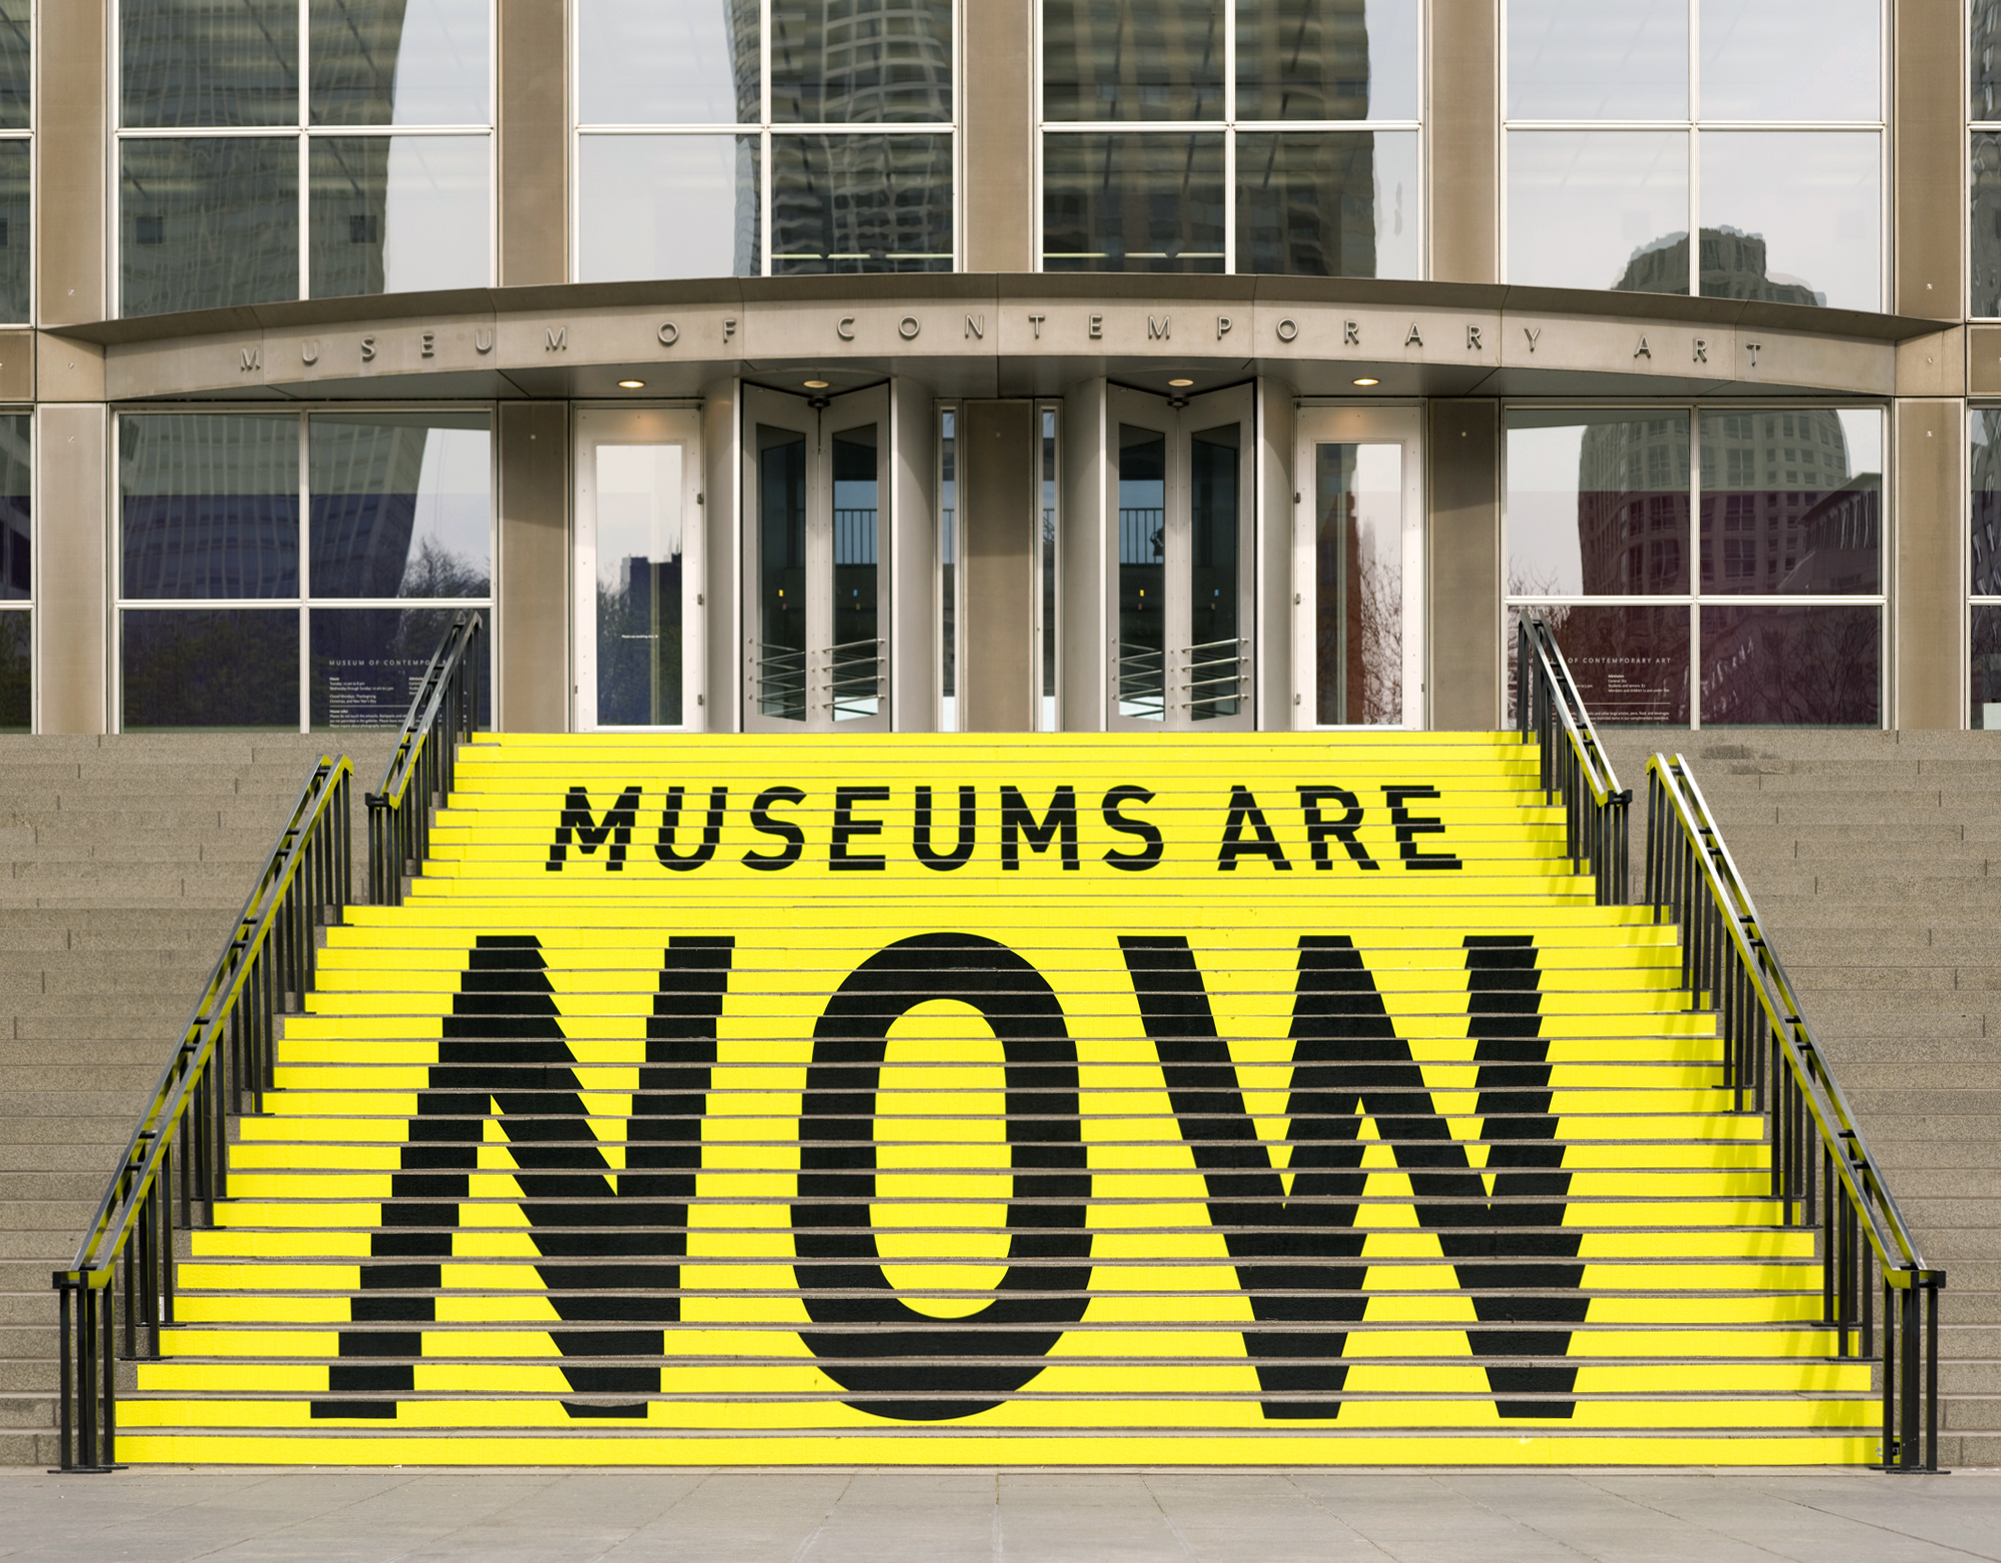 The Museum of Contemporary Art building, with a staircase that says